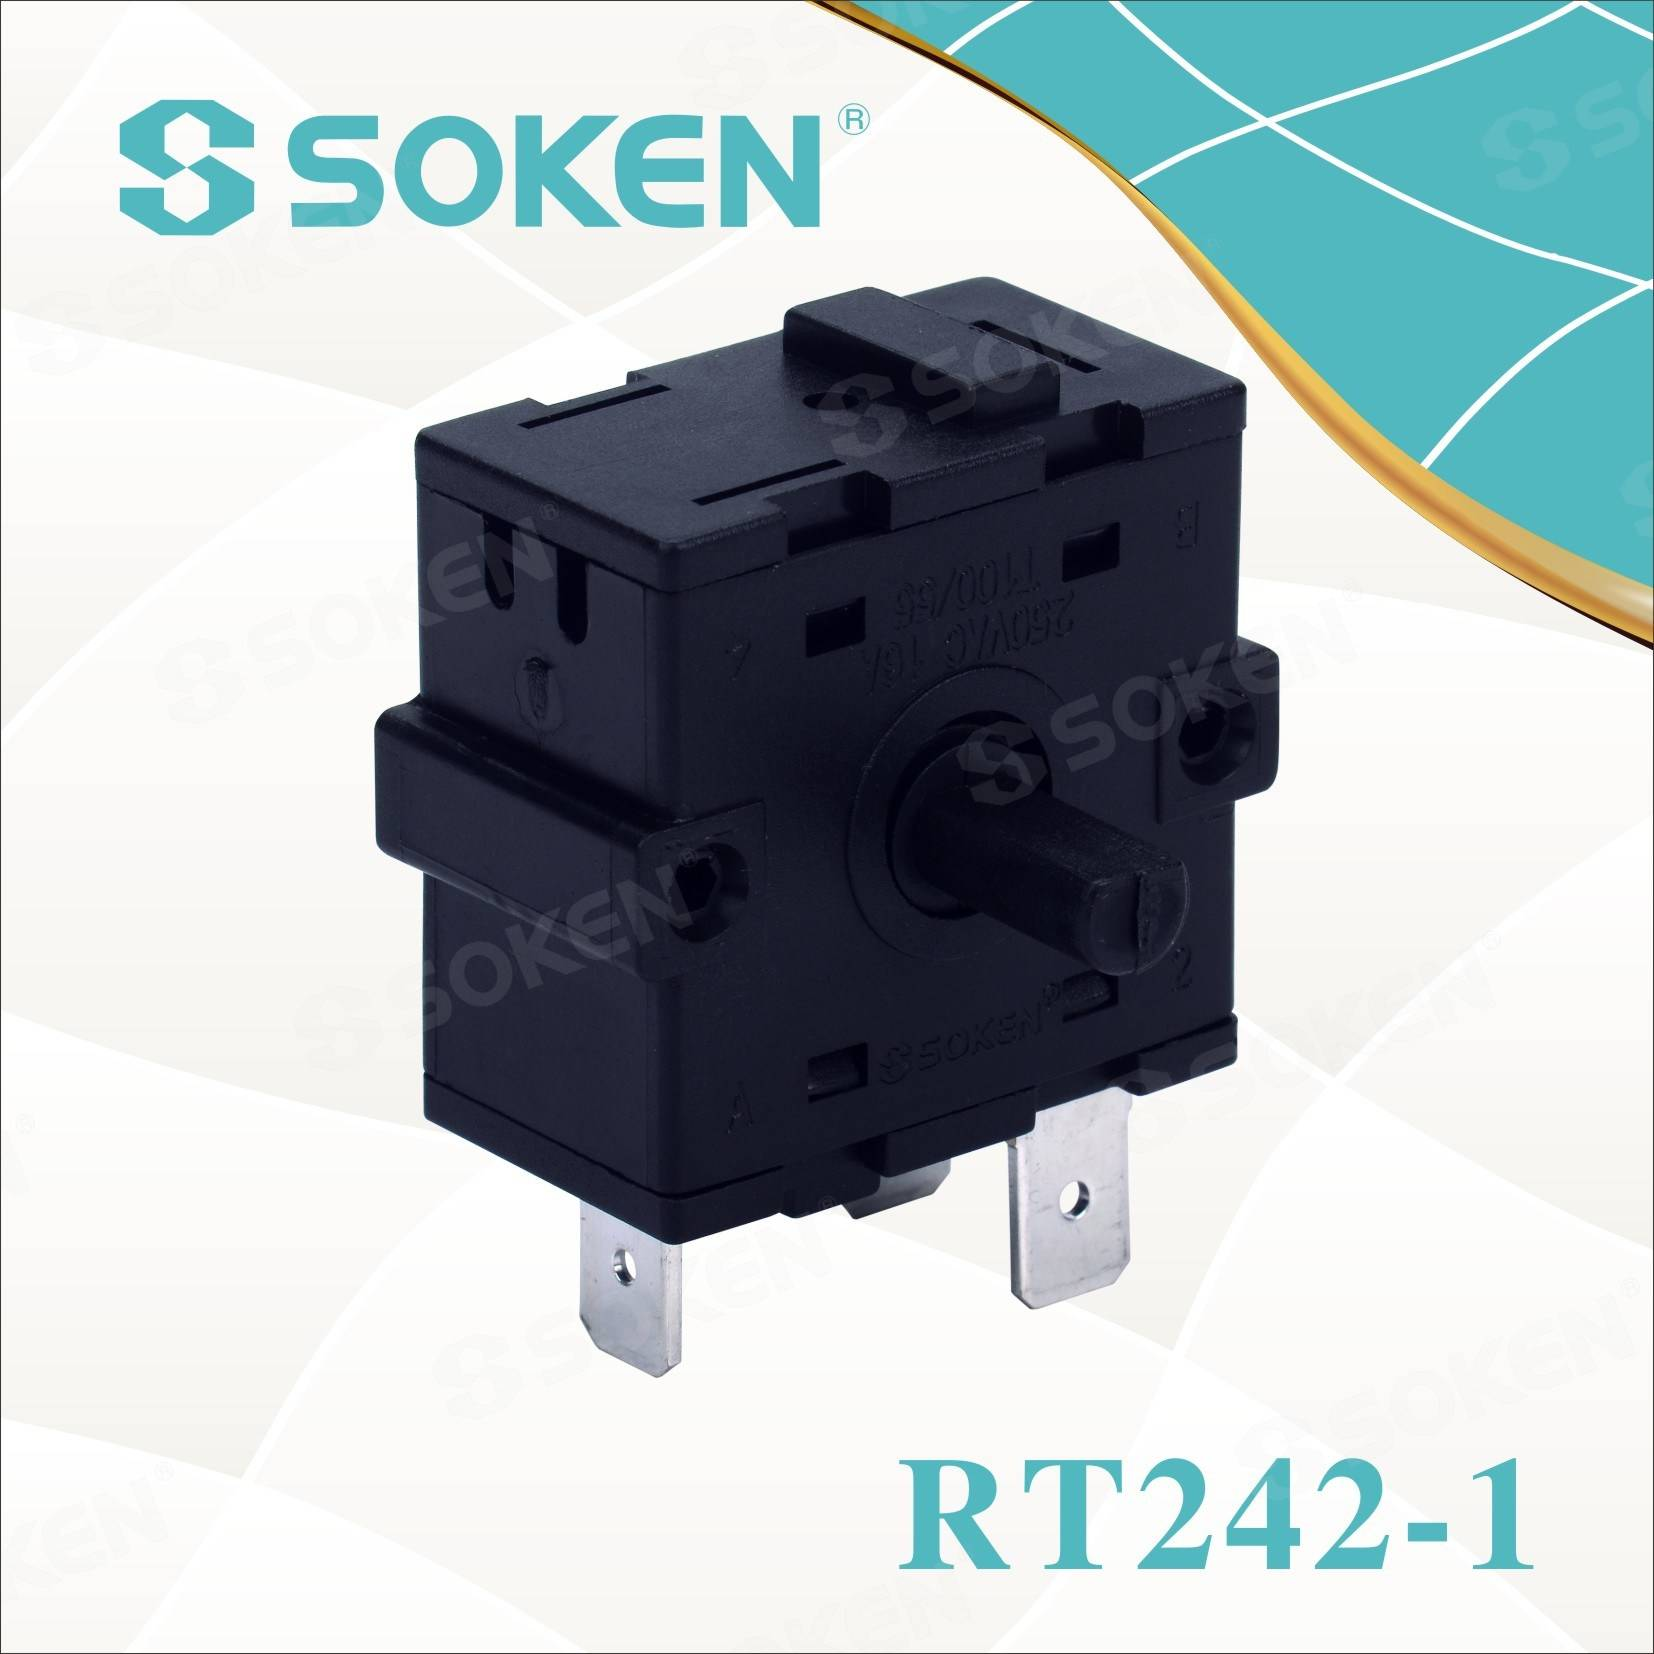 Soken Rotary Switch voor Cooker